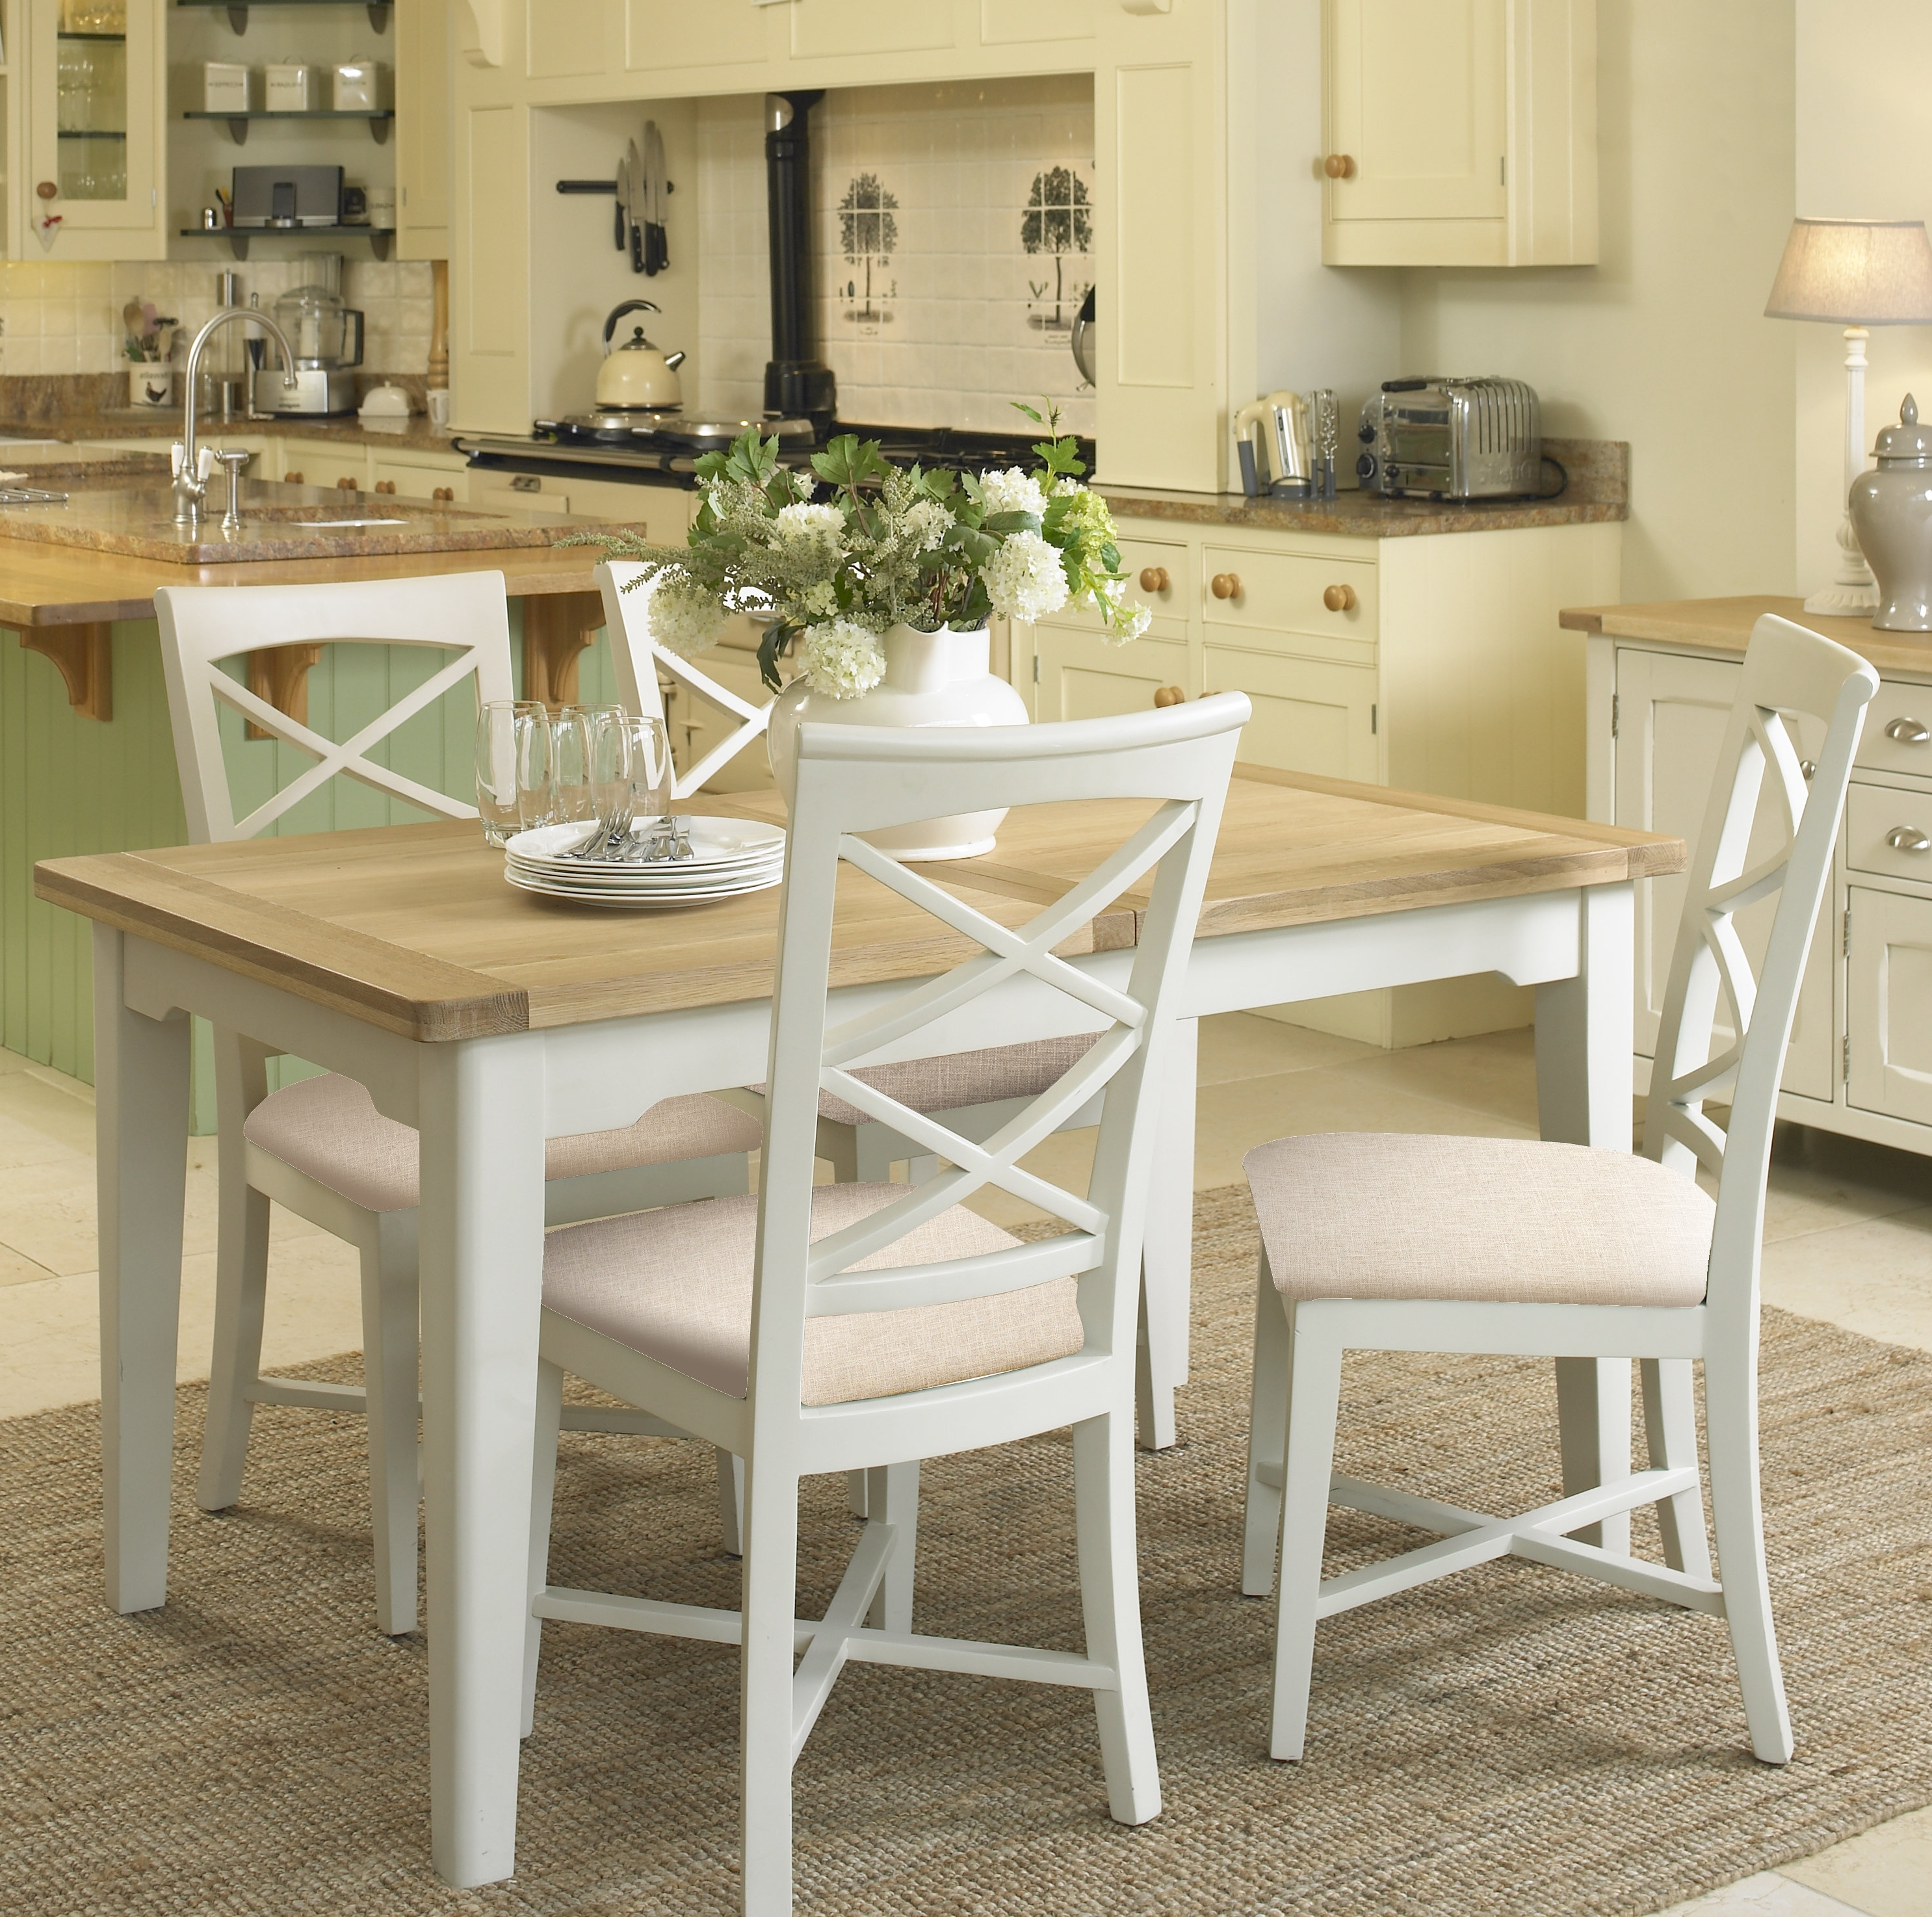 Rosecliff Heights Petunia Extendable Dining Set With 4 Chairs With Regard To Favorite Extendable Dining Tables And 4 Chairs (View 5 of 25)